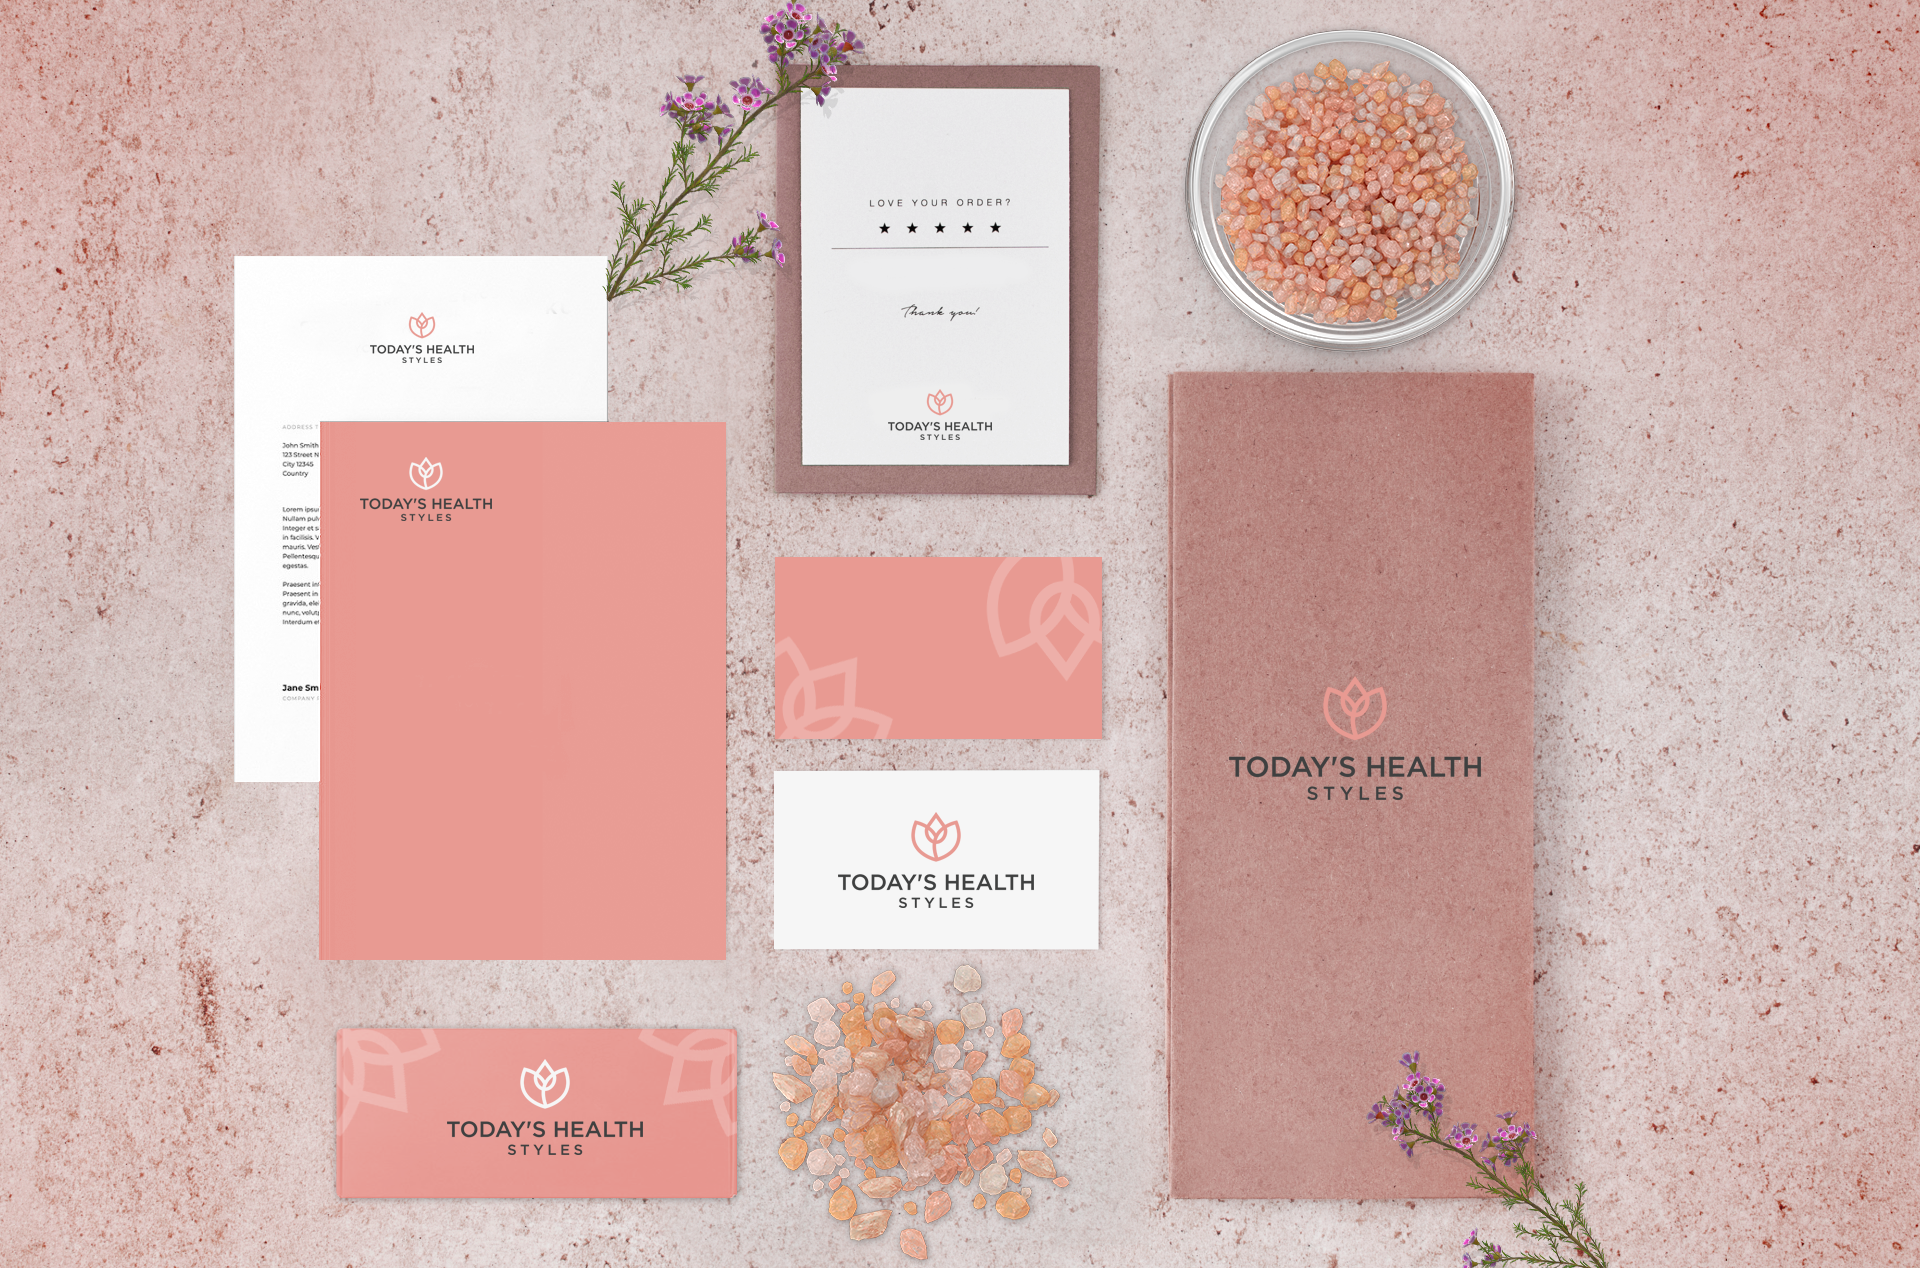 Stationery design and branding for a wellness product - Himalayan Salt